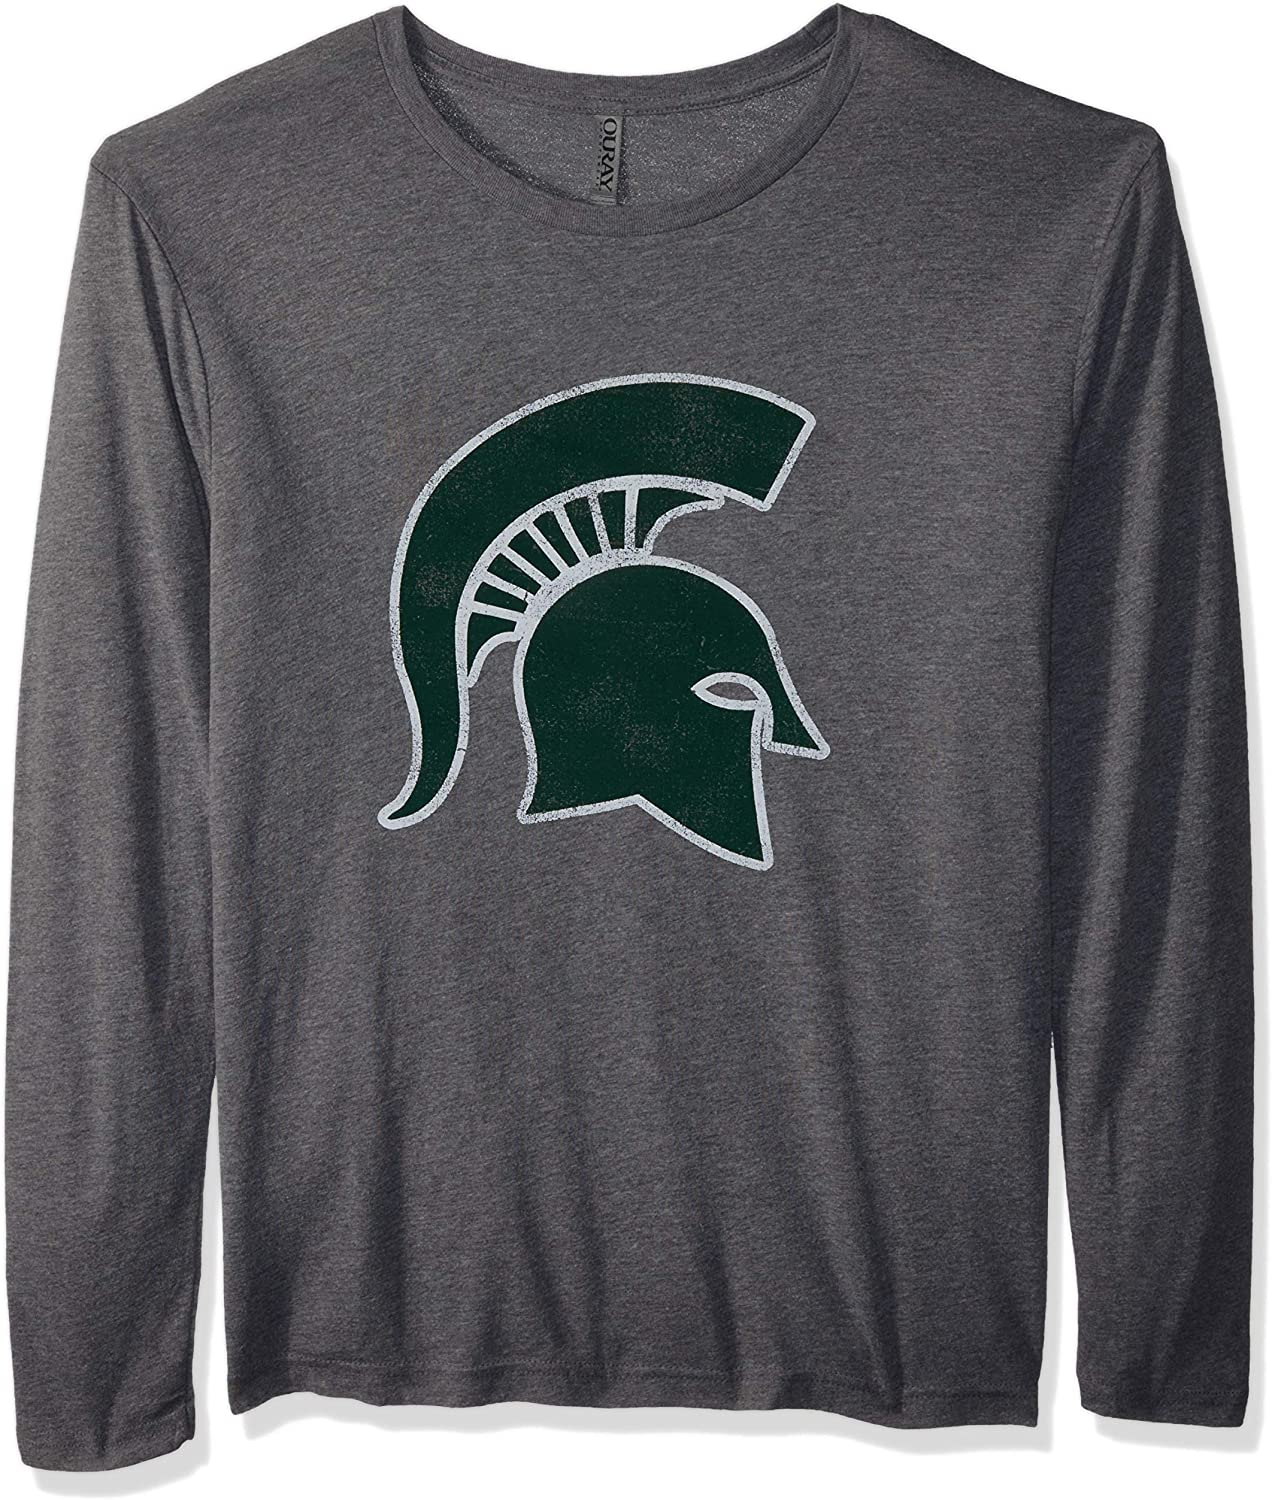 Choice Ouray Sportswear NCAA Mens Tee S Tri-Blend L Special sale item